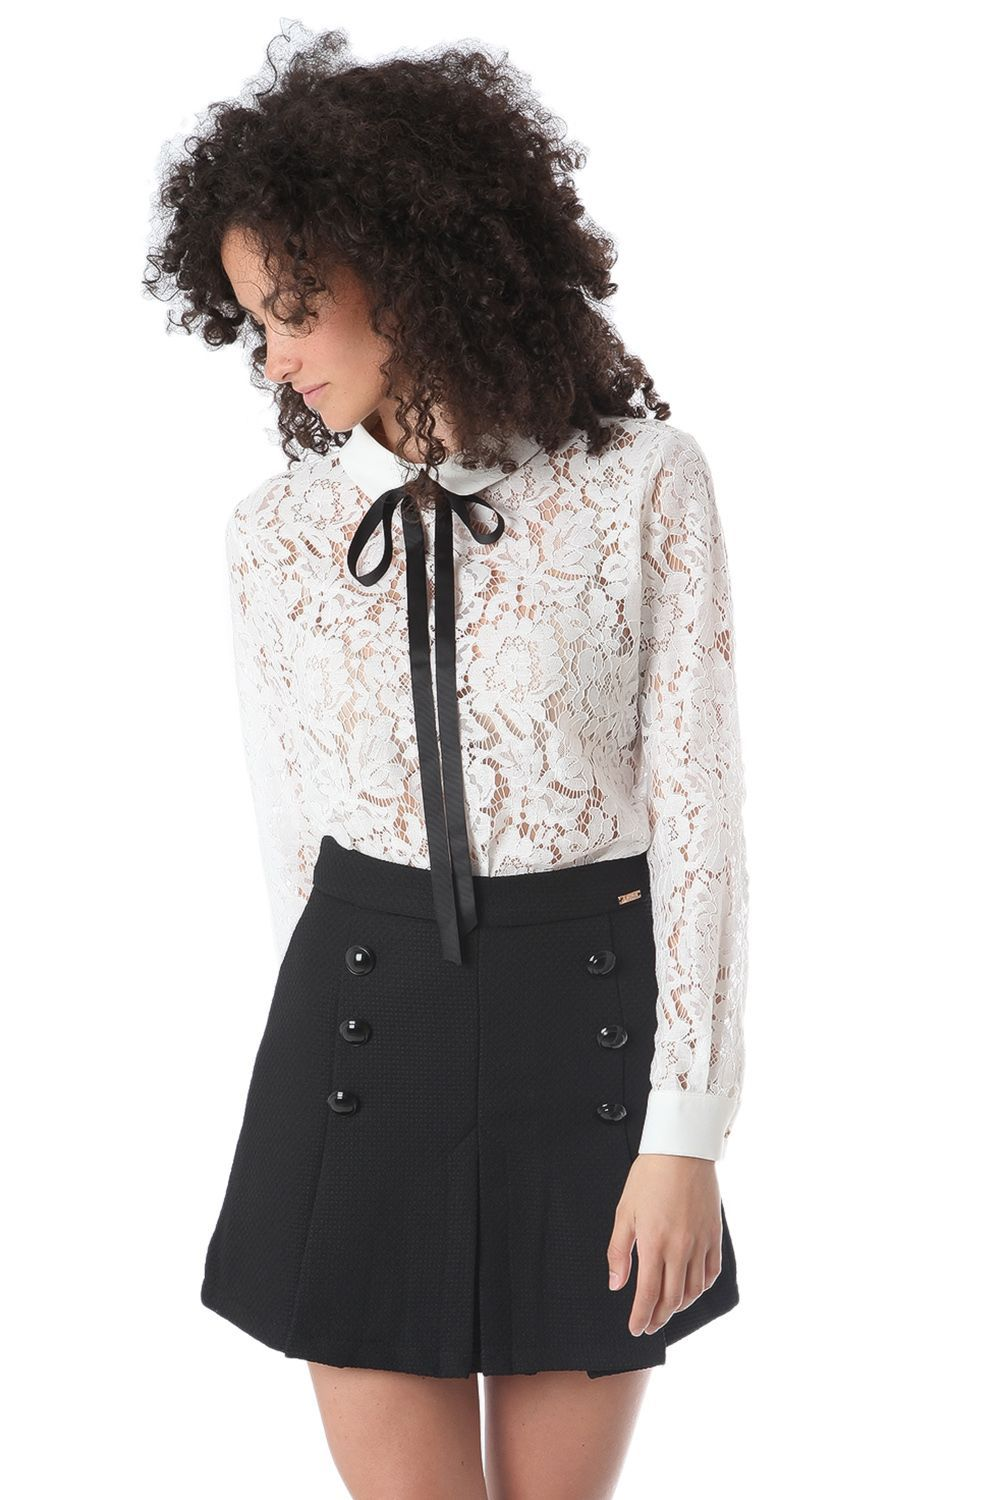 Eyelash lace blouse with black bow tie - 54,90 € - https://q2shop.com/